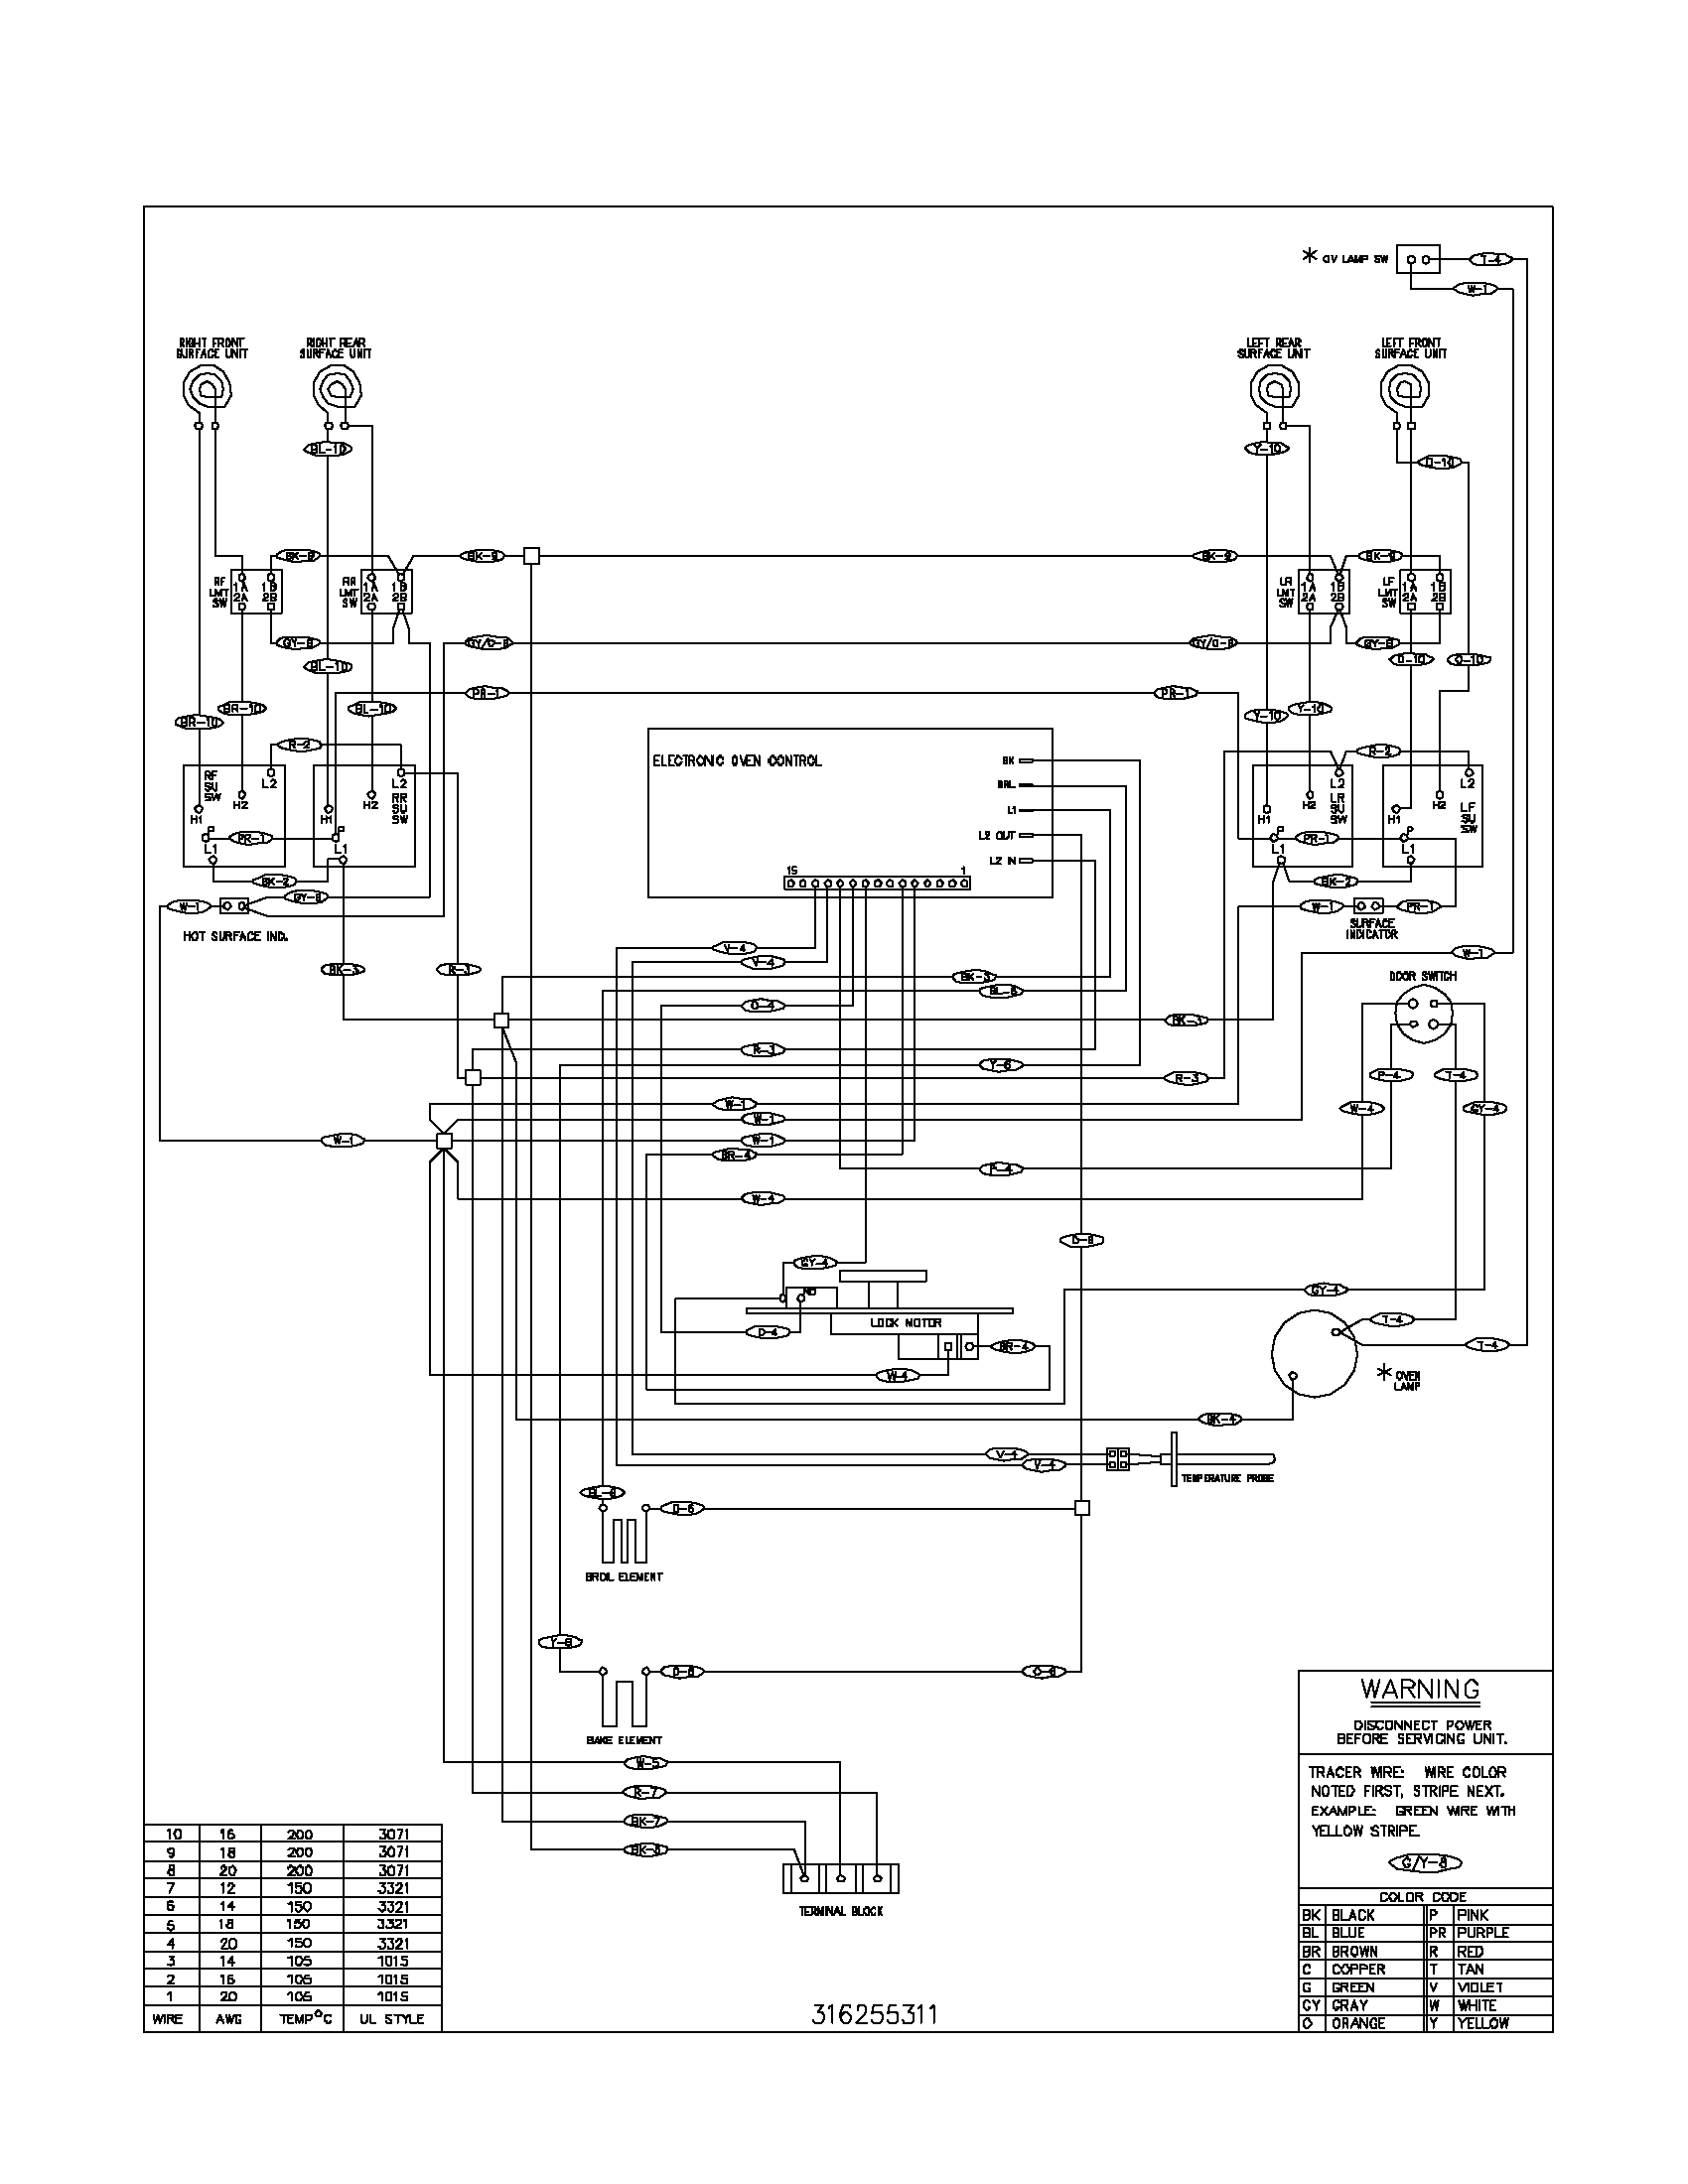 wiring diagram parts?resize\\\\\\\\\\\\\\\\\\\\\\\\\\\\\\\\\\\\\\\\\\\\\\\=665%2C861\\\\\\\\\\\\\\\\\\\\\\\\\\\\\\\\\\\\\\\\\\\\\\\&ssl\\\\\\\\\\\\\\\\\\\\\\\\\\\\\\\\\\\\\\\\\\\\\\\=1 rdx 755dz wiring diagram,dz \u2022 edmiracle co  at metegol.co